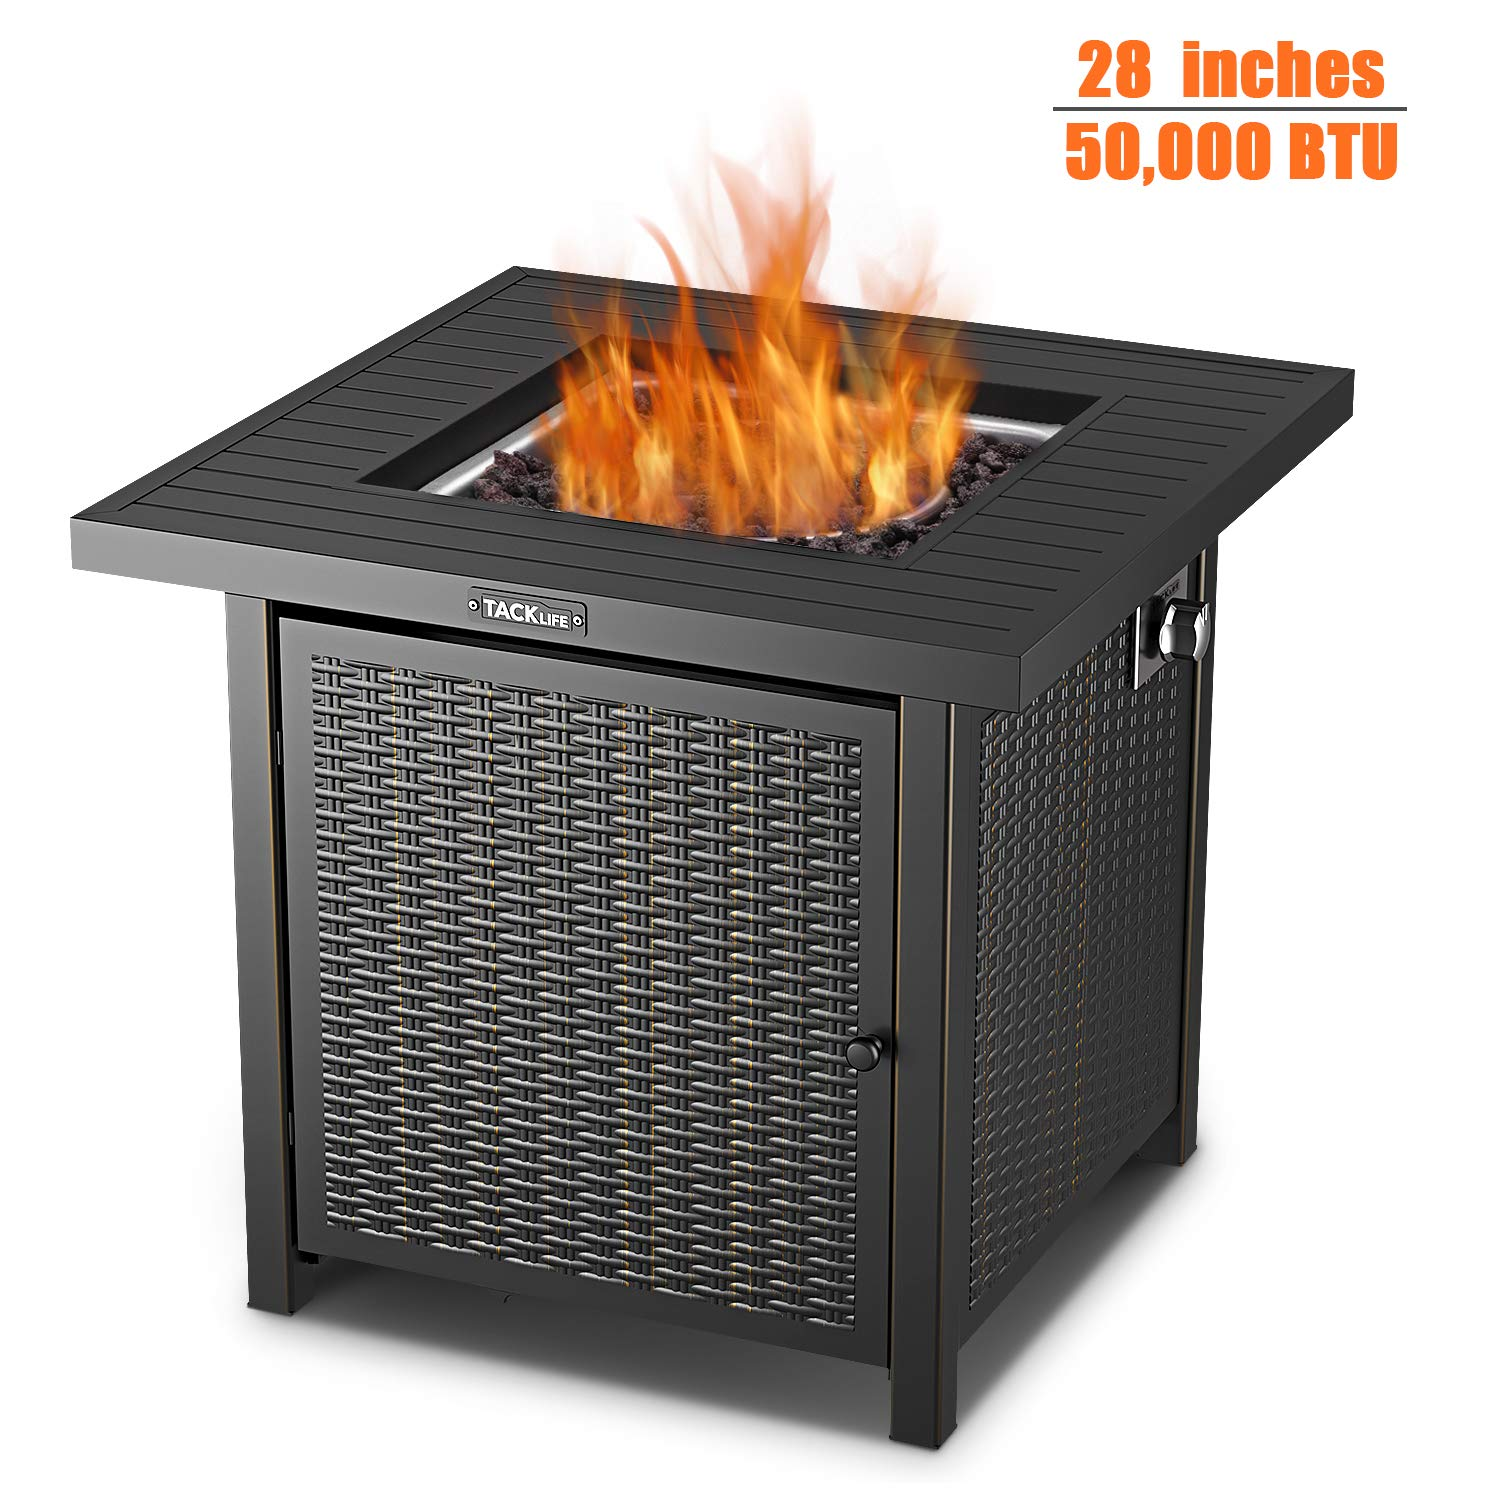 TACKLIFE Propane Fire Pit Table, 28 inch 50,000 BTU Auto-Ignition Outdoor Gas Fire Pit Table with Cover, CSA Certification Approval and Strong Striped Steel Tabletop (Square Black)